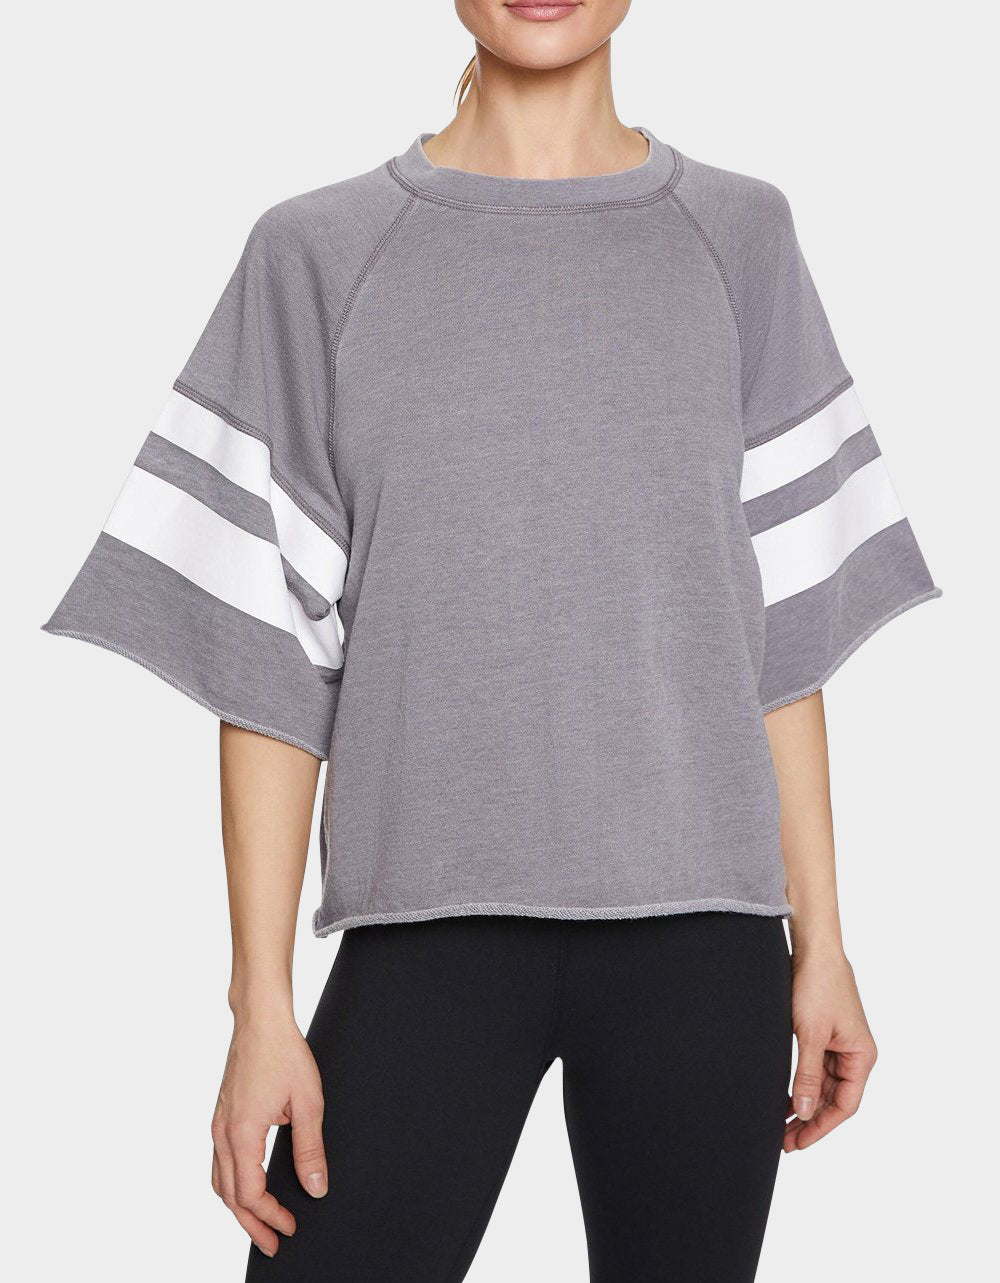 PRINTED STRIPE CUTOFF SWEATSHIRT GREY - APPAREL - Betsey Johnson